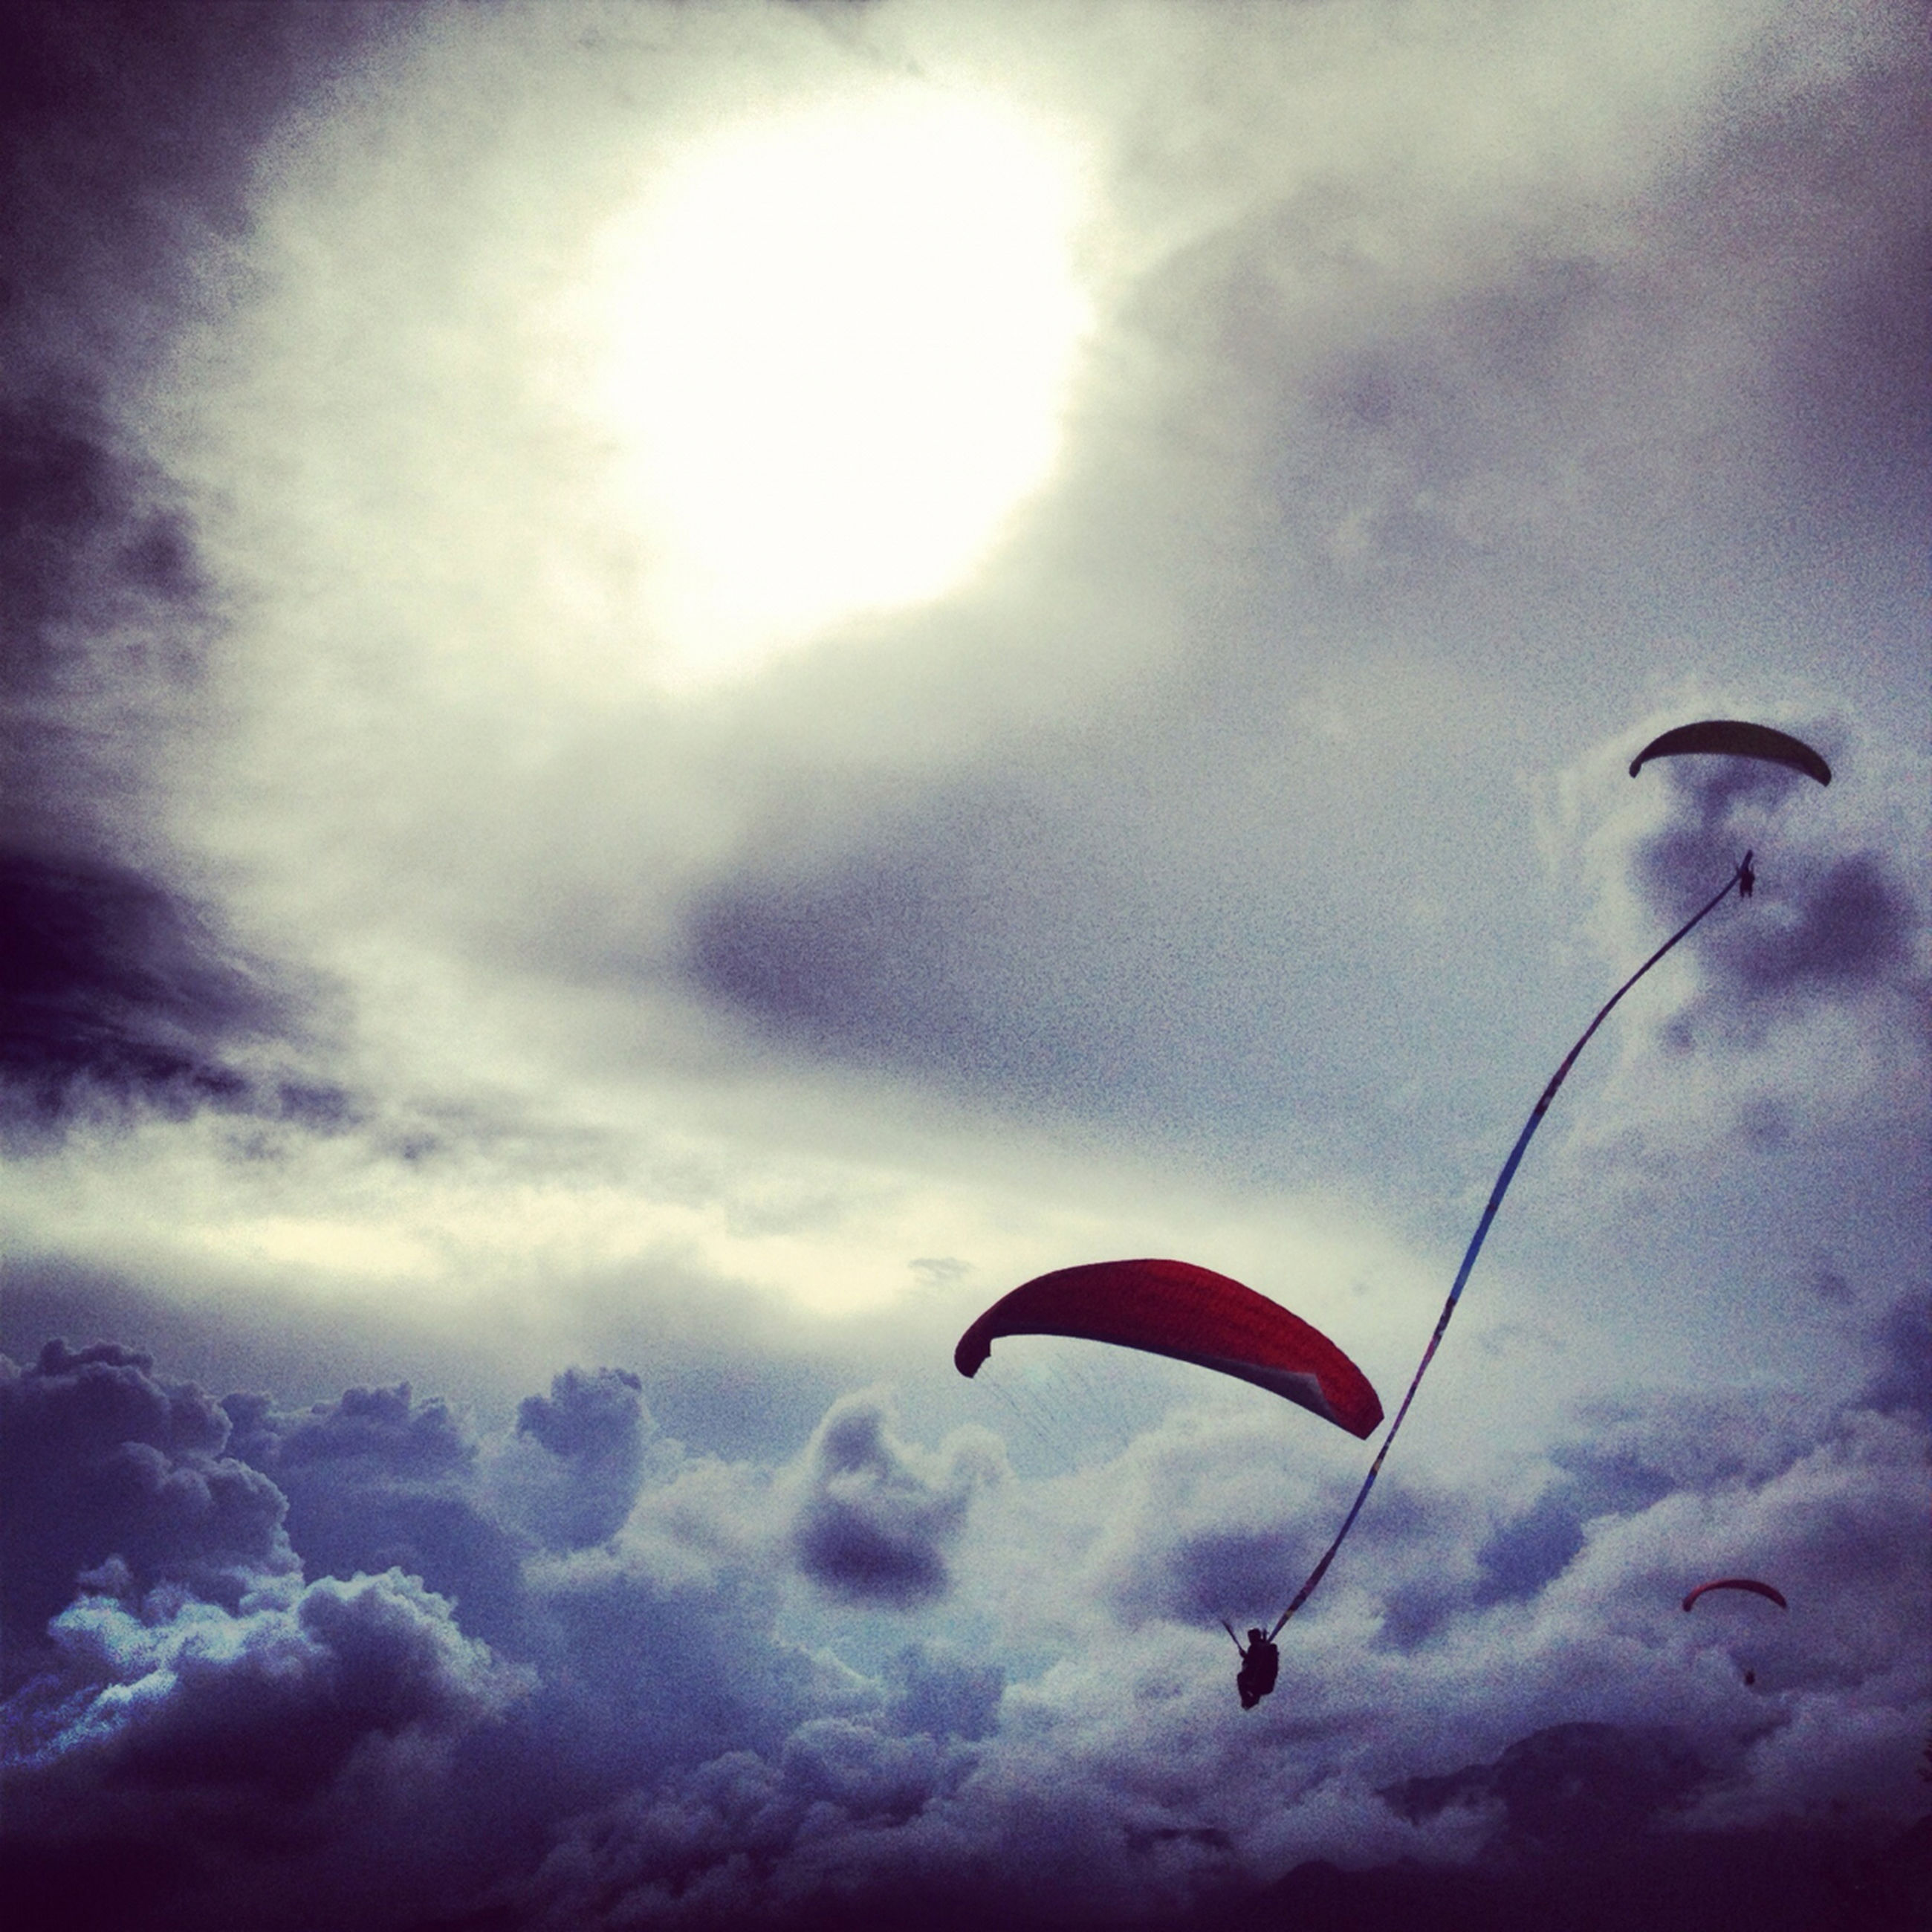 low angle view, sky, cloud - sky, mid-air, flying, cloudy, cloud, nature, beauty in nature, tranquility, scenics, outdoors, parachute, adventure, weather, freedom, day, paragliding, no people, tranquil scene